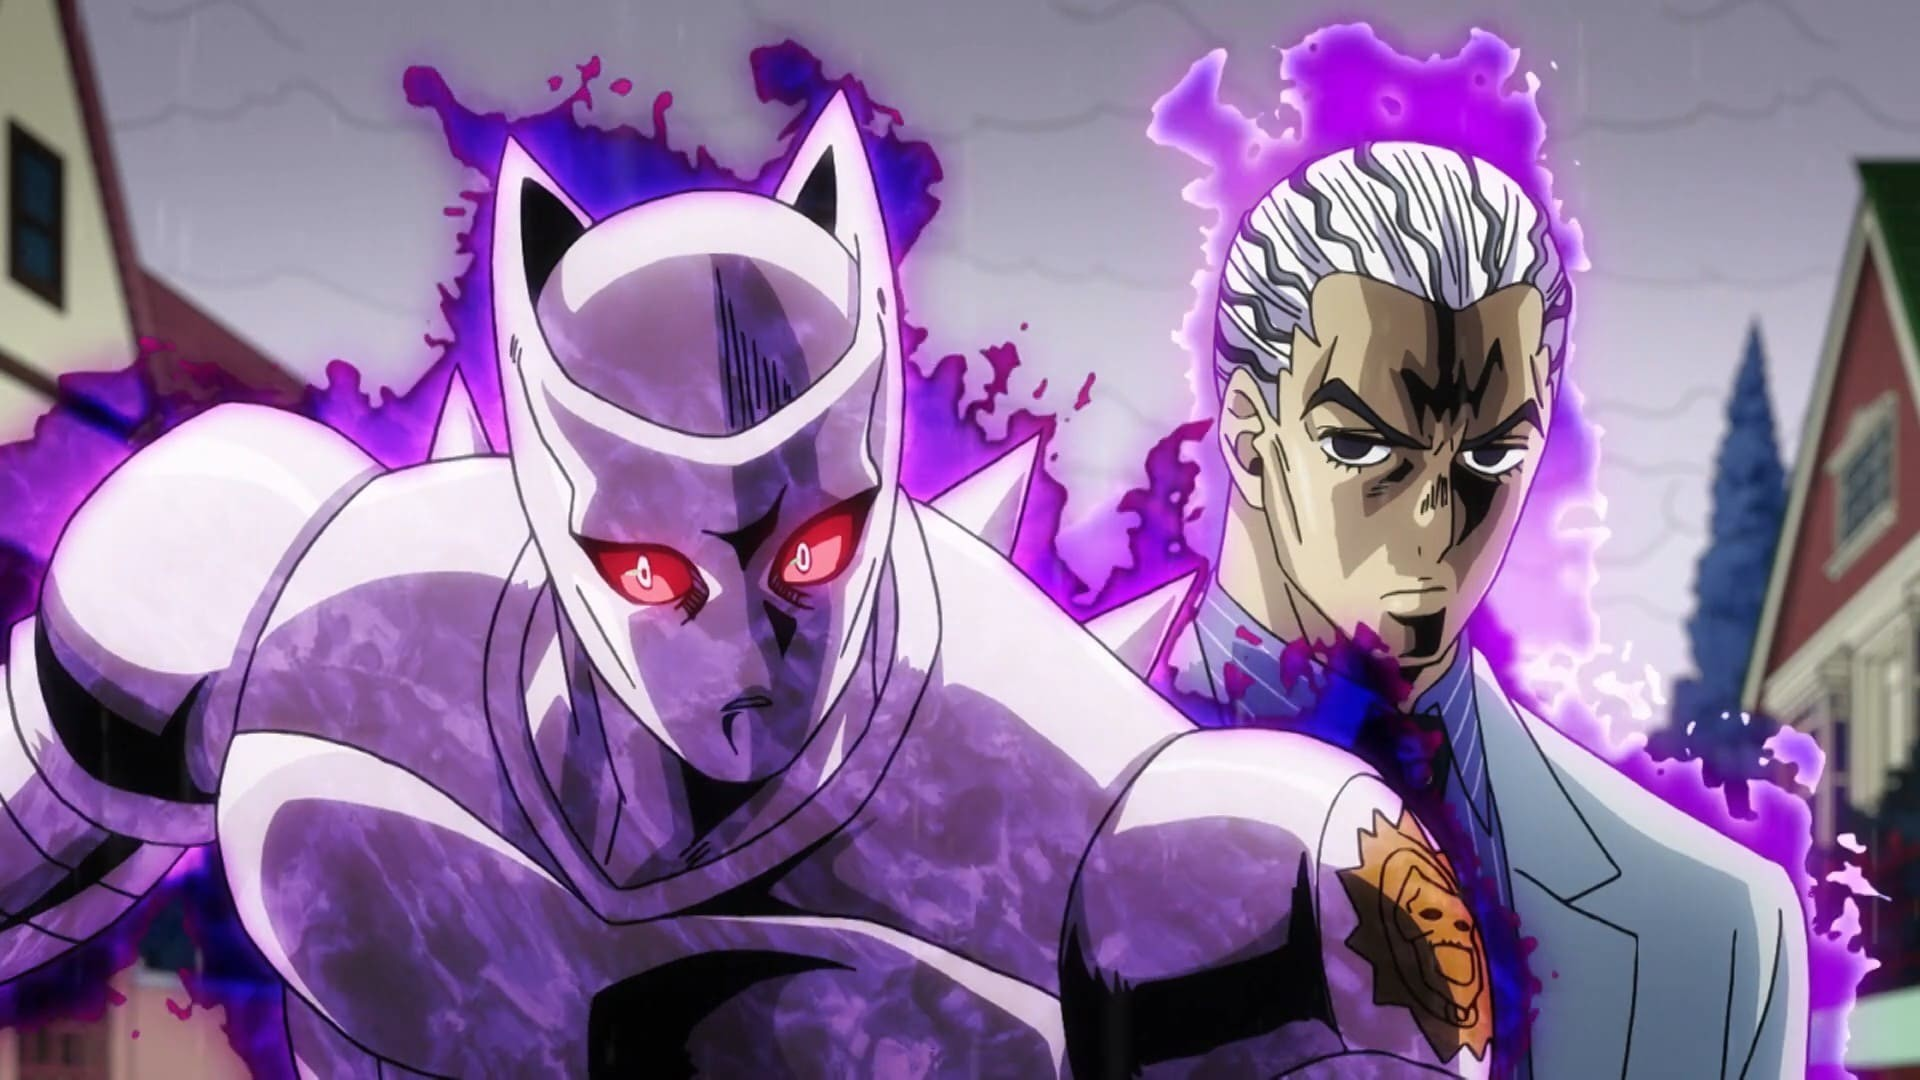 Res: 1920x1080, Otaku, Fictional Character, Supervillain, Fiction, Purple HD Wallpaper,  Music Picture, Background and Image